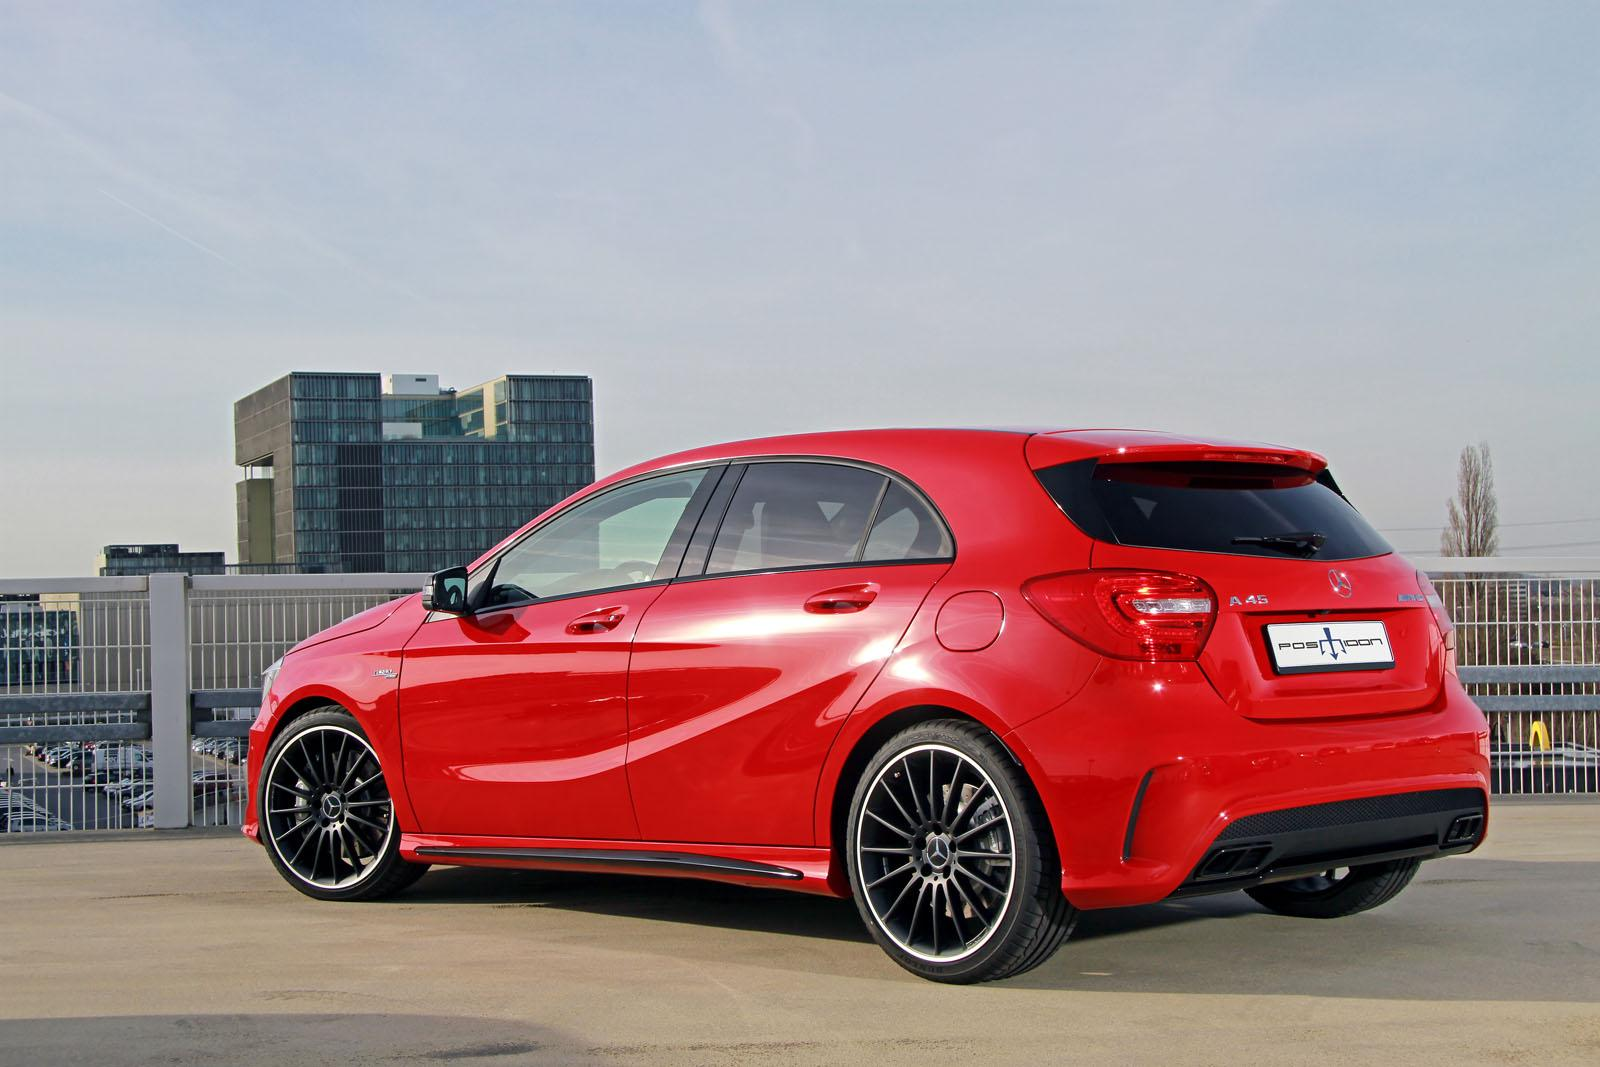 2014 mercedes benz a45 amg by posaidon rear photo red color size 1600 x 1067 nr 3 9. Black Bedroom Furniture Sets. Home Design Ideas